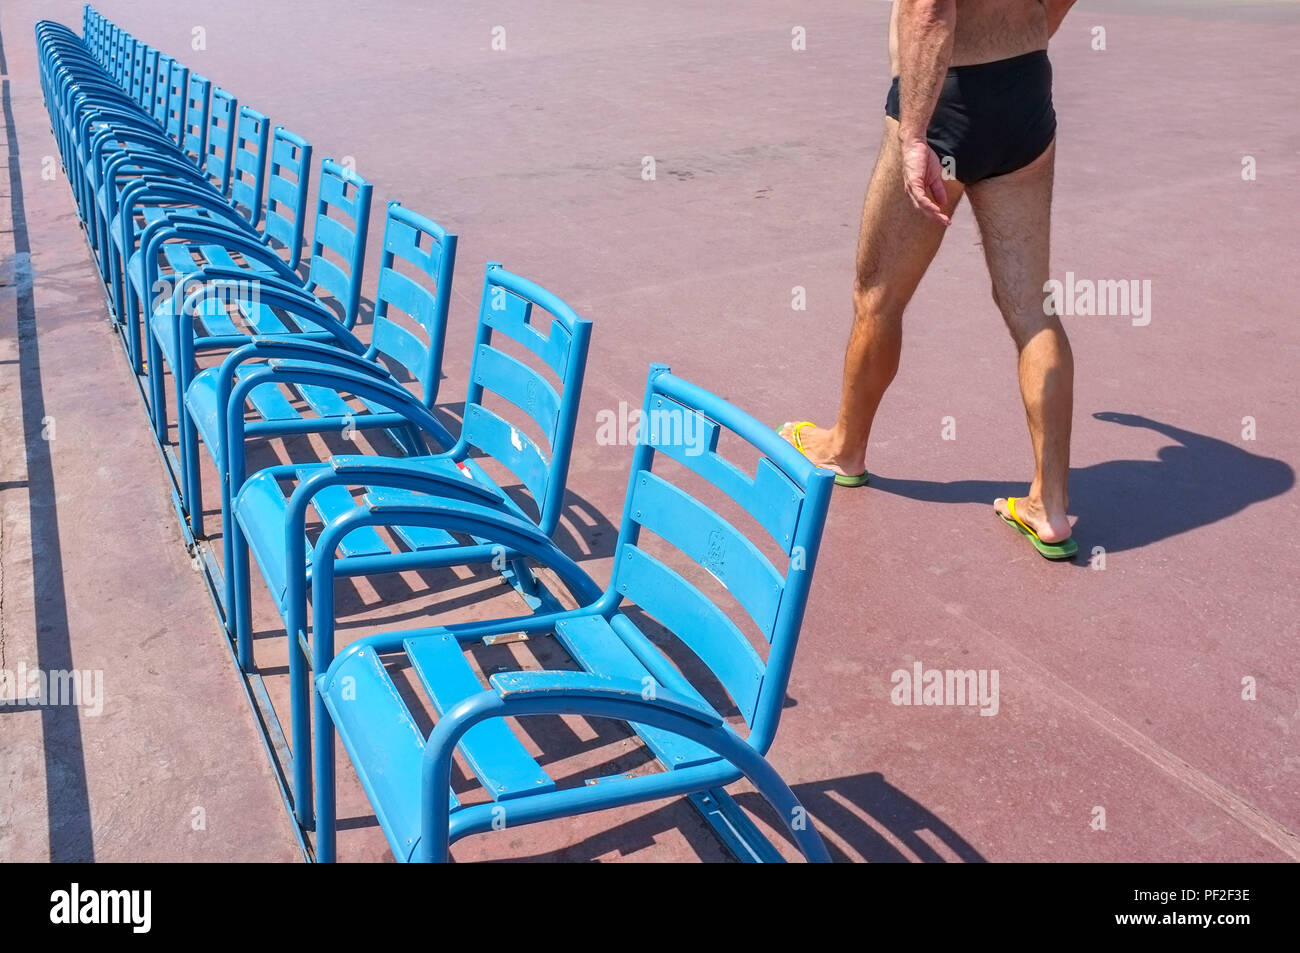 a-man-walk-by-the-blue-chairs-on-the-promenade-des-anglais-in-nice-france-PF2F3E.jpg